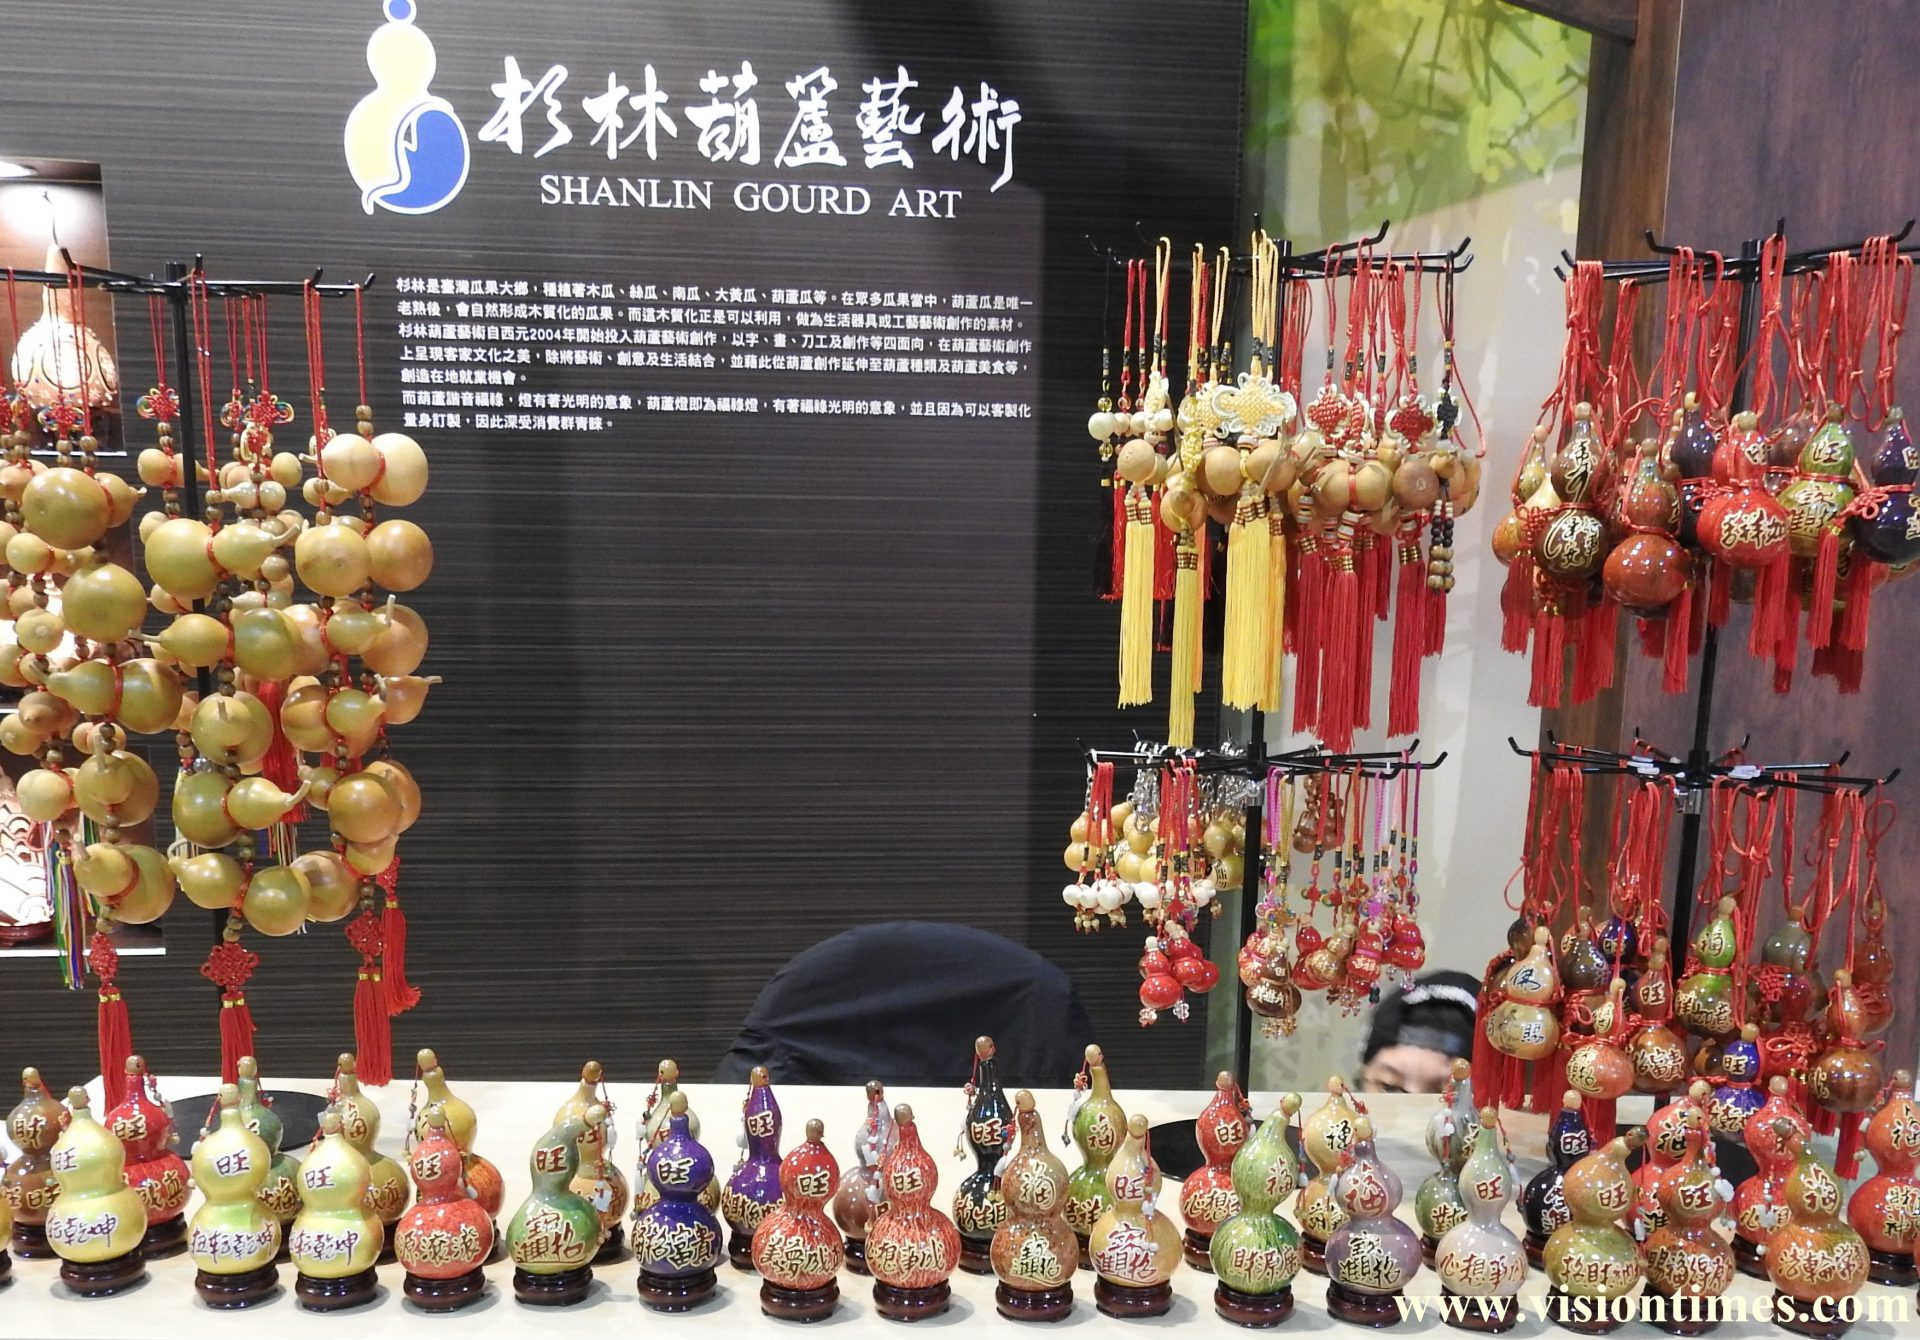 The Unique bottle gourd carvings displayed at the 2017 Hakka Expo (Image: Julia Fu / Vision Times)